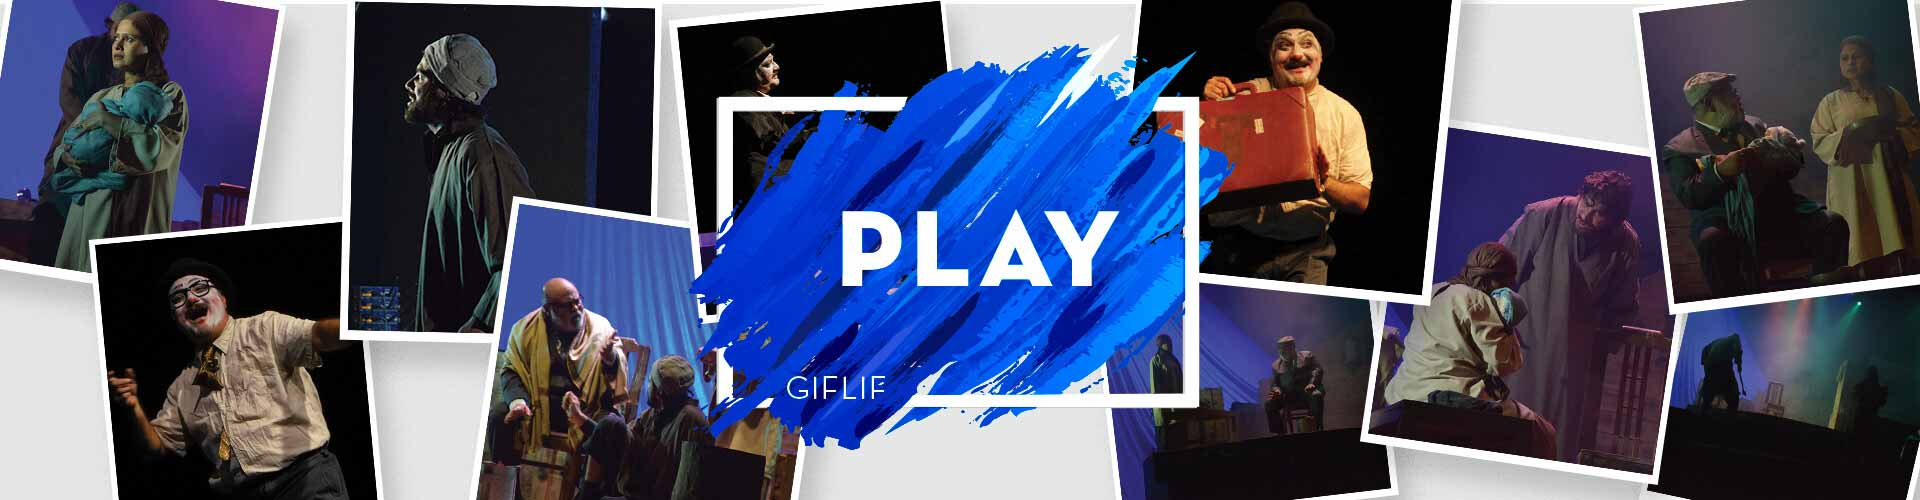 3-GIFLIF-Collage-(Play-Website)